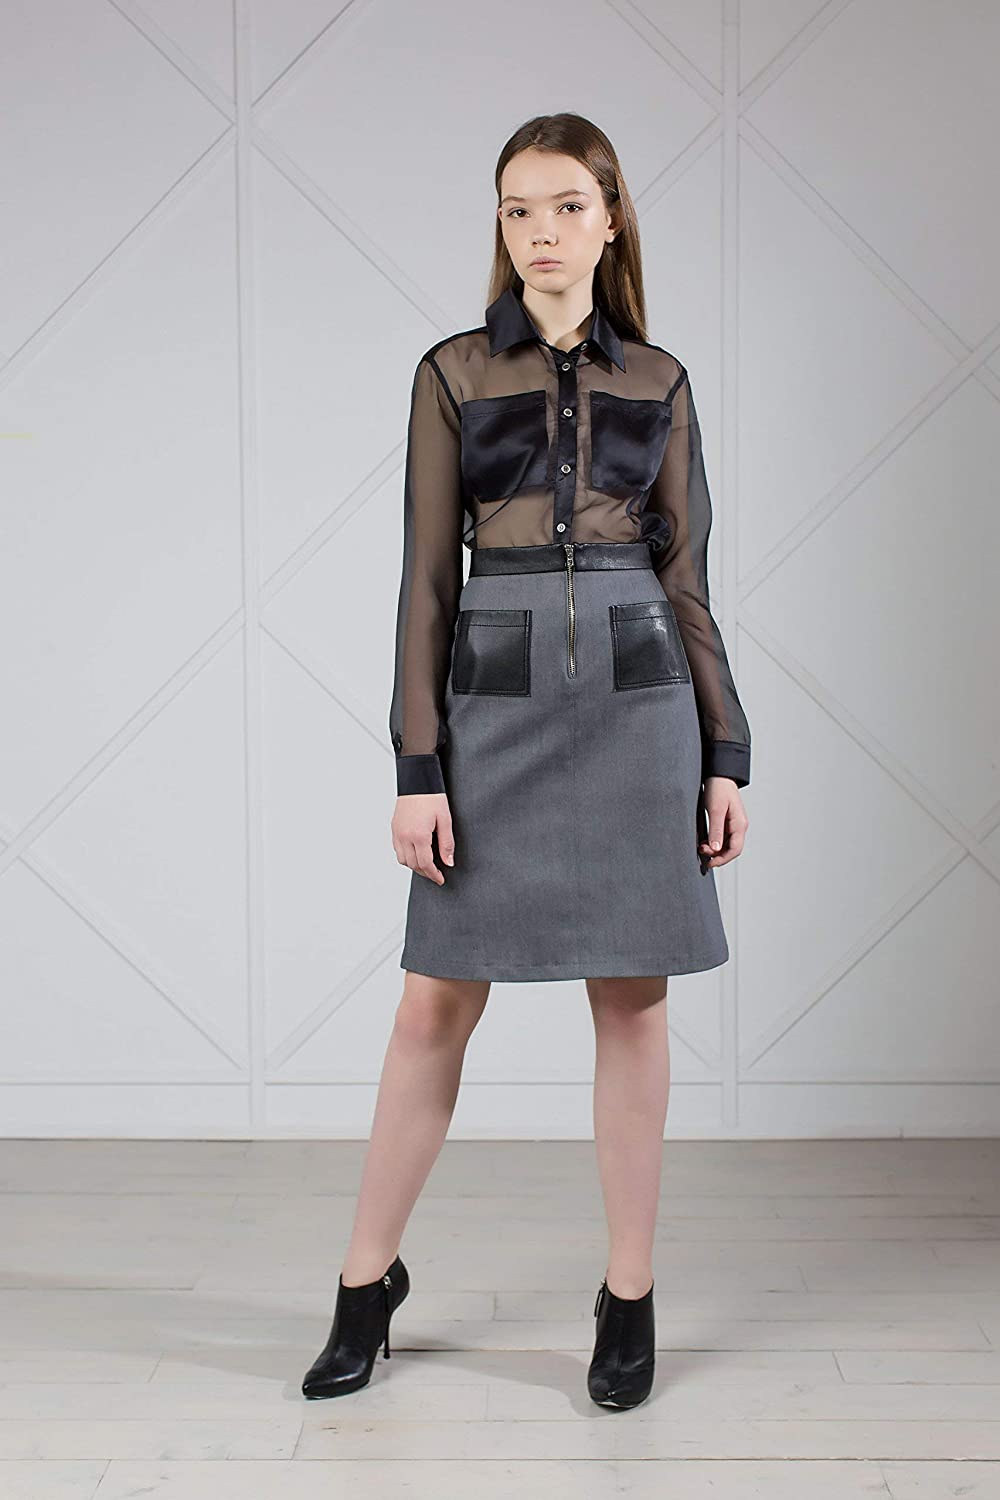 70ddef4a3a Gray denim knee length skirt with black leather pockets and belt. It has a  \'70s-inspired A-line trapeze silhouette, midi length and high waist are ...